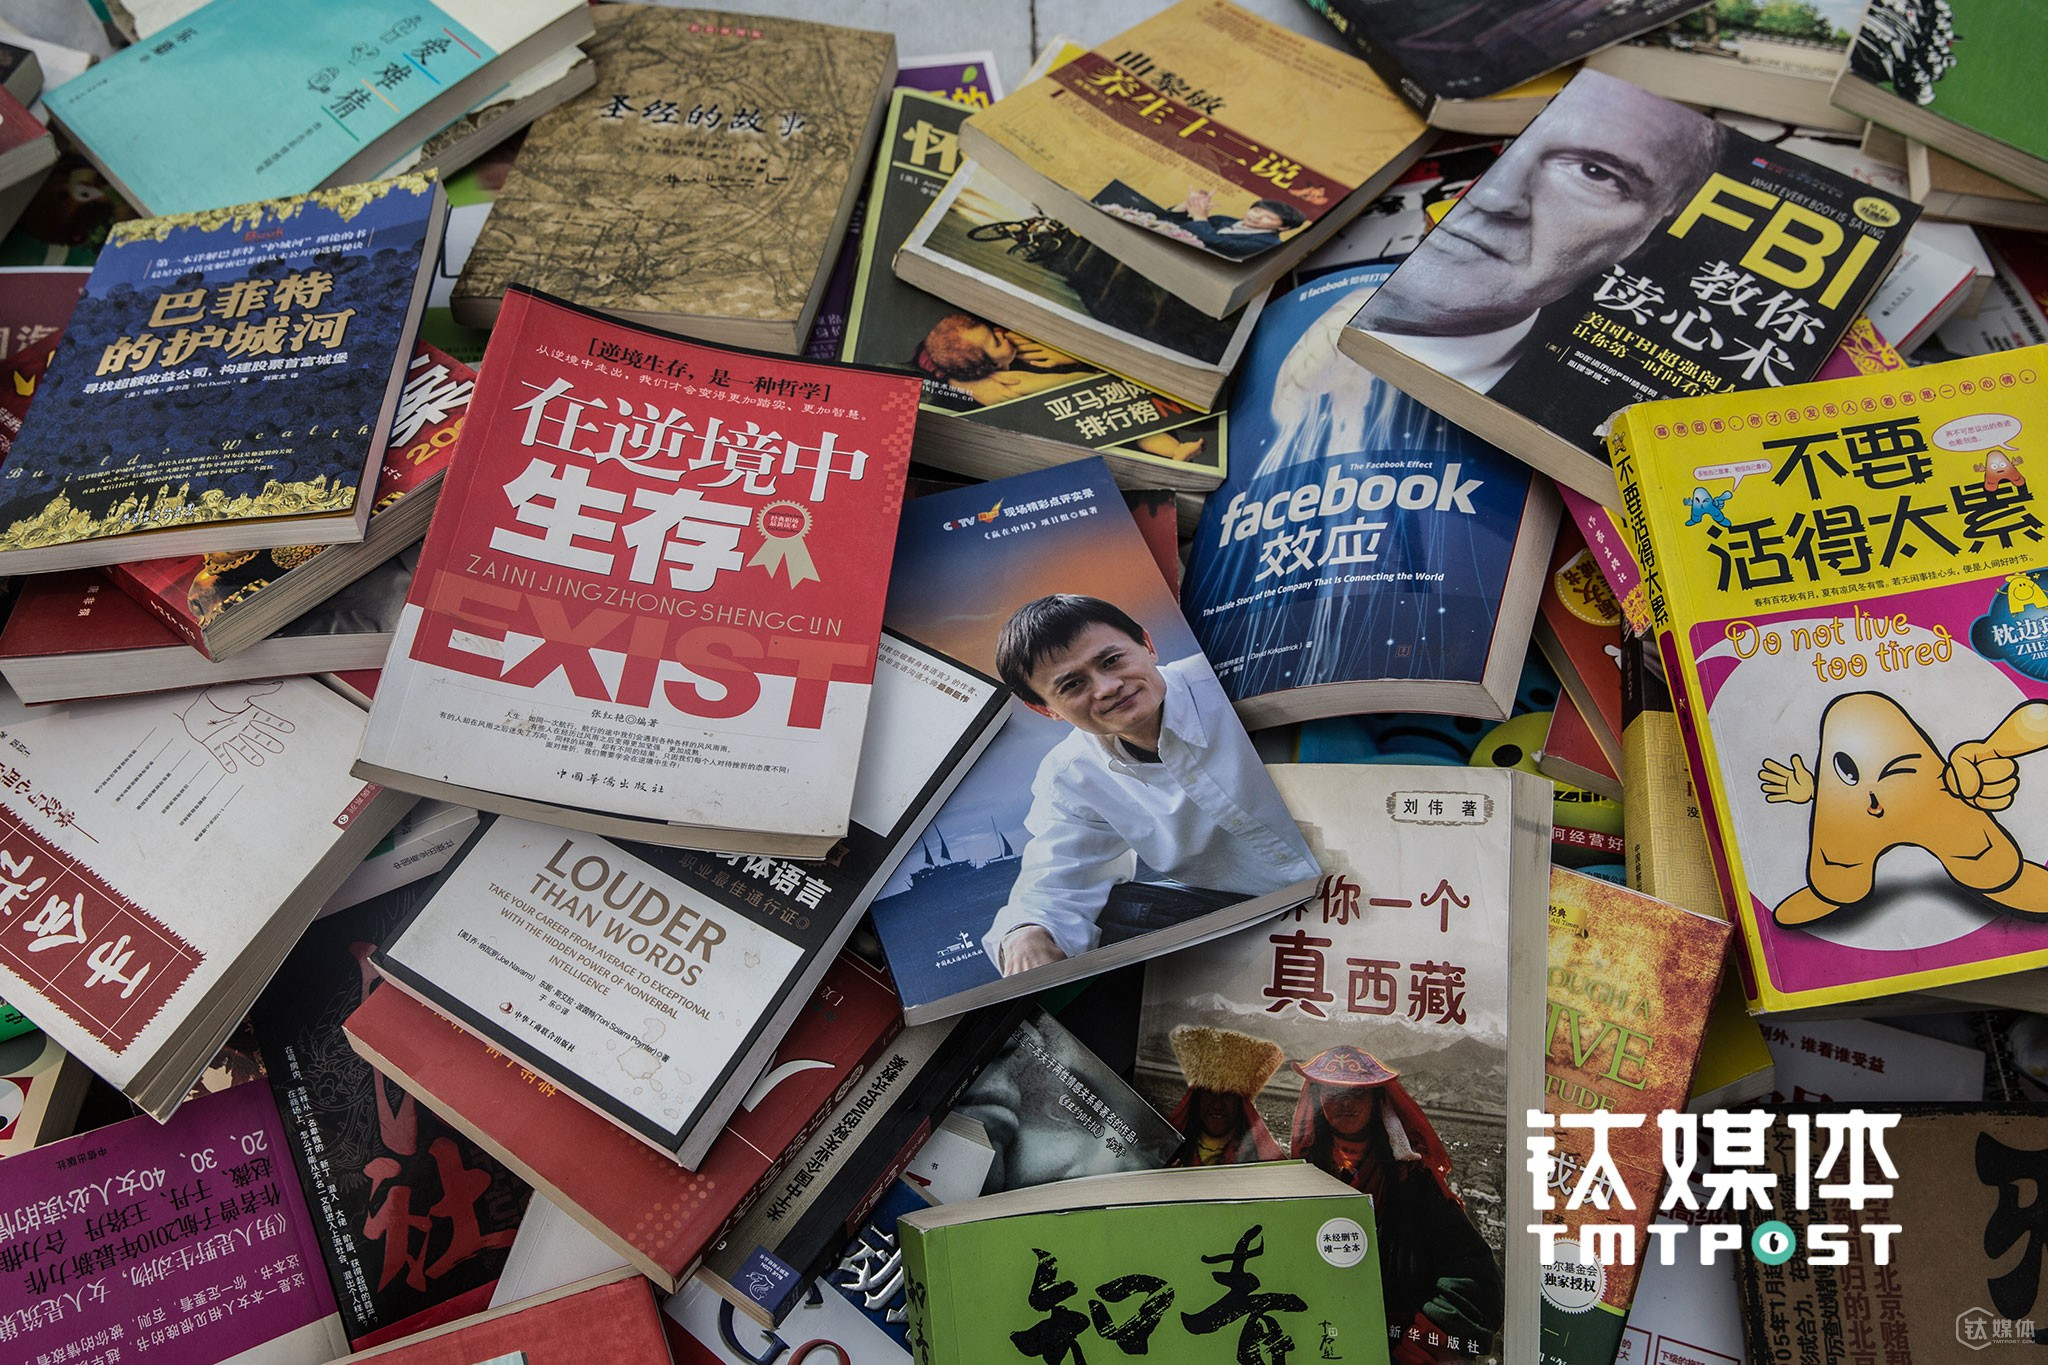 Books about the secret of success, the business philosophy and chicken soups were sold on second-hand book stands in Zhongguan Village.